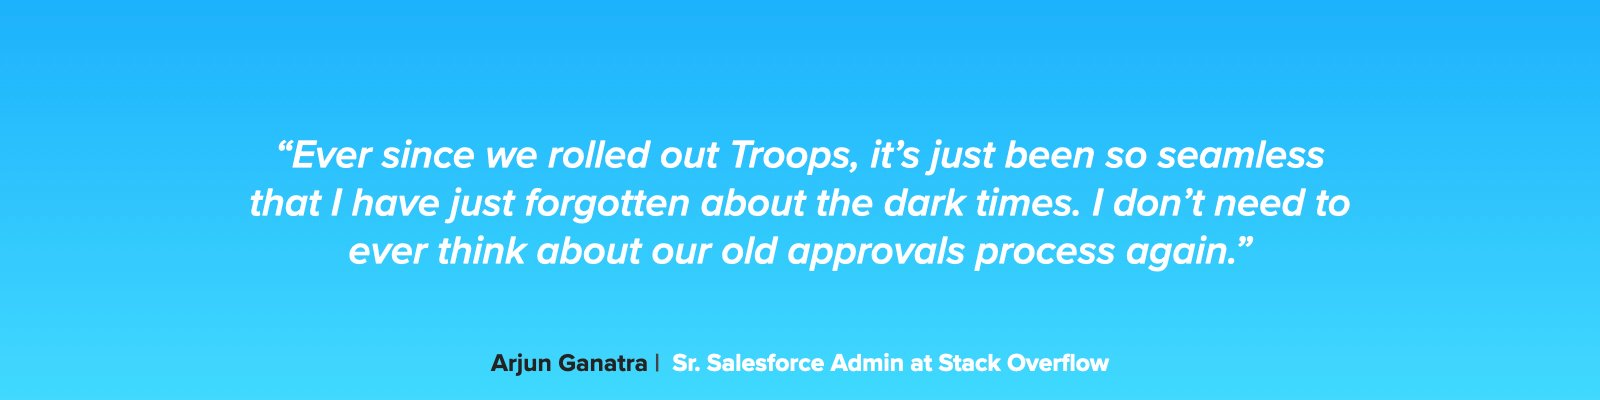 StackOverflow Quote#3.001